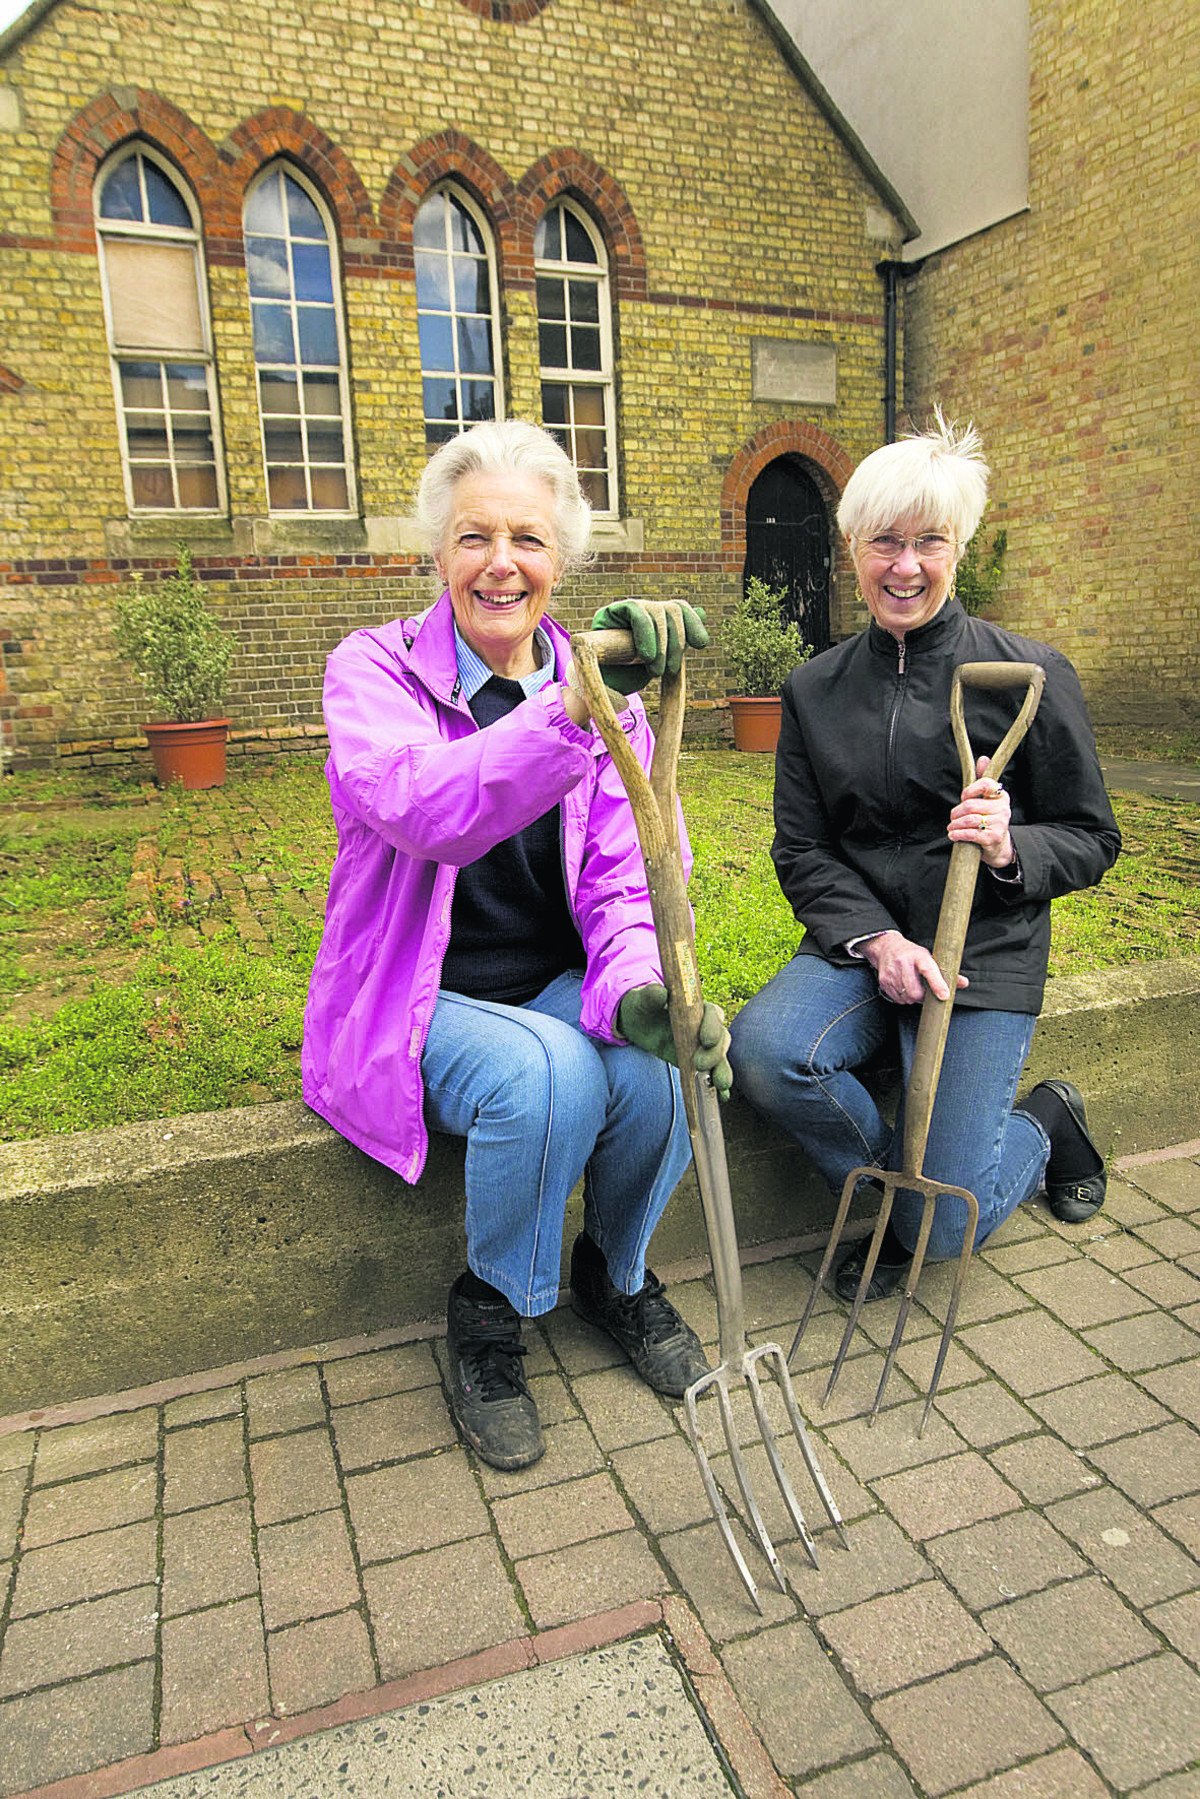 Wendy Ball and Phyllis Starkey, right, in the new garden outside the Old School building in Walton Street       Picture: OX66058 Antony Moore